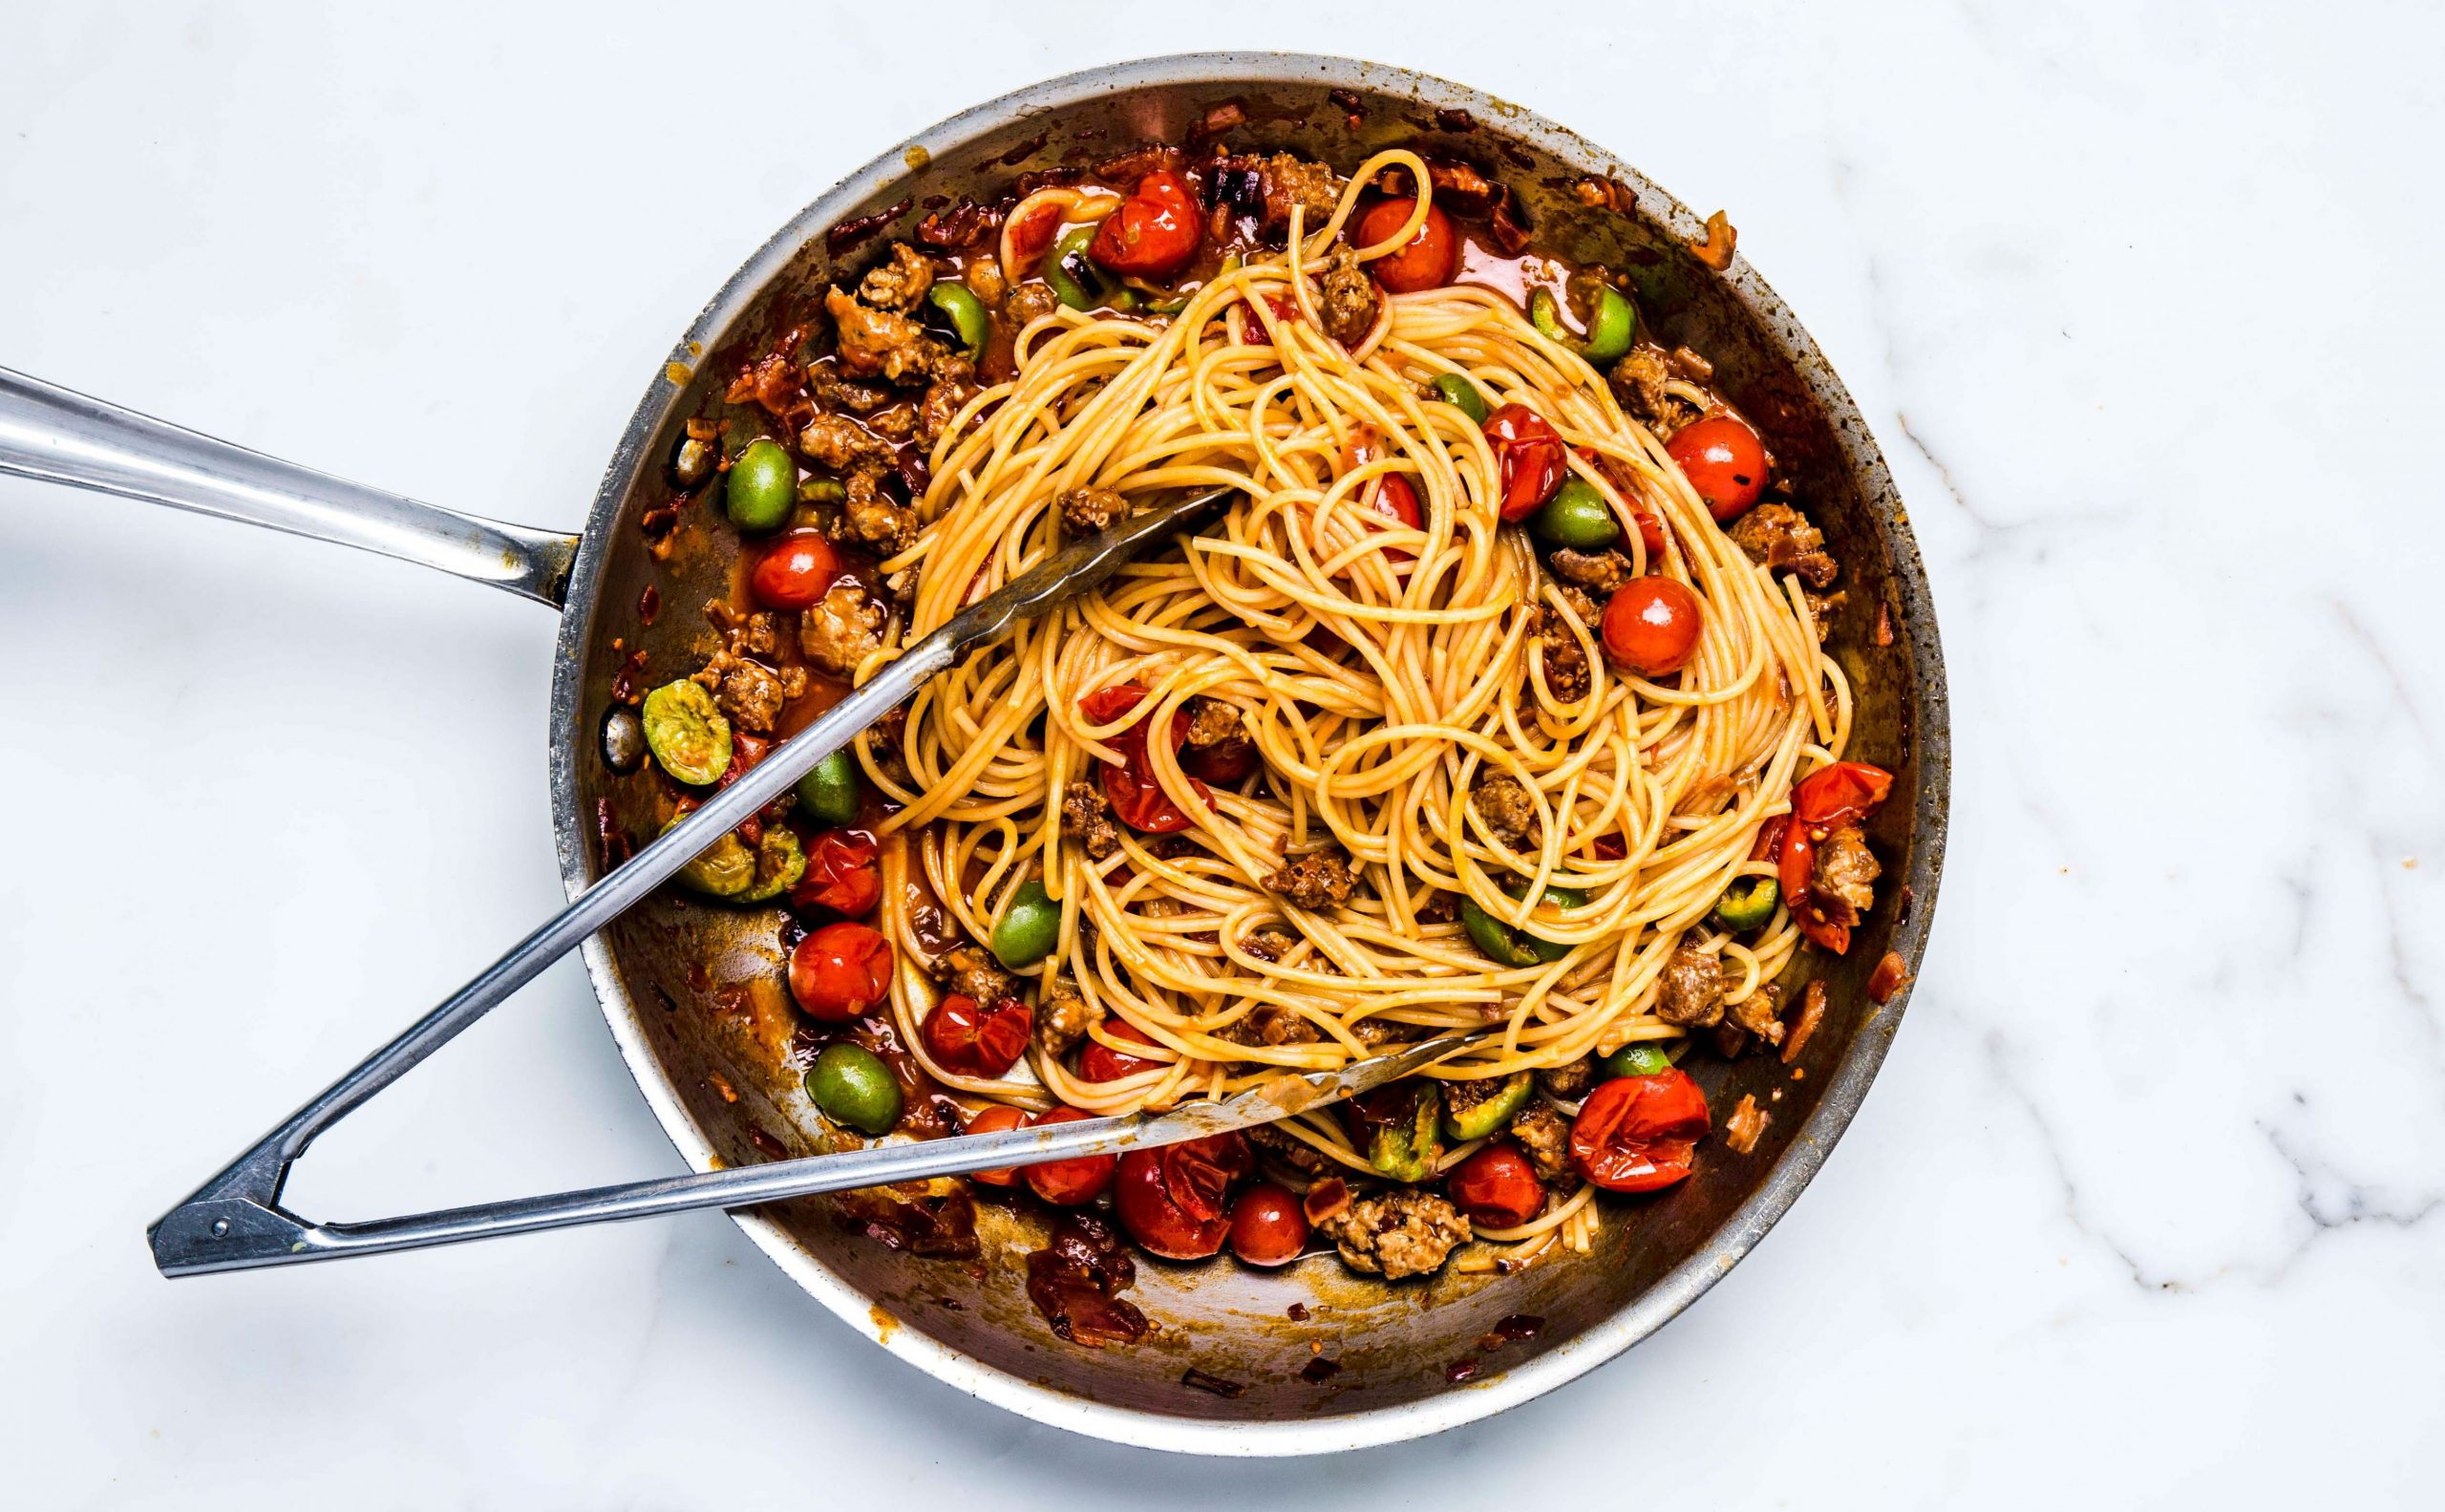 8 Easy Dinner Recipes, for When You Just Can't With Cooking | Bon ...